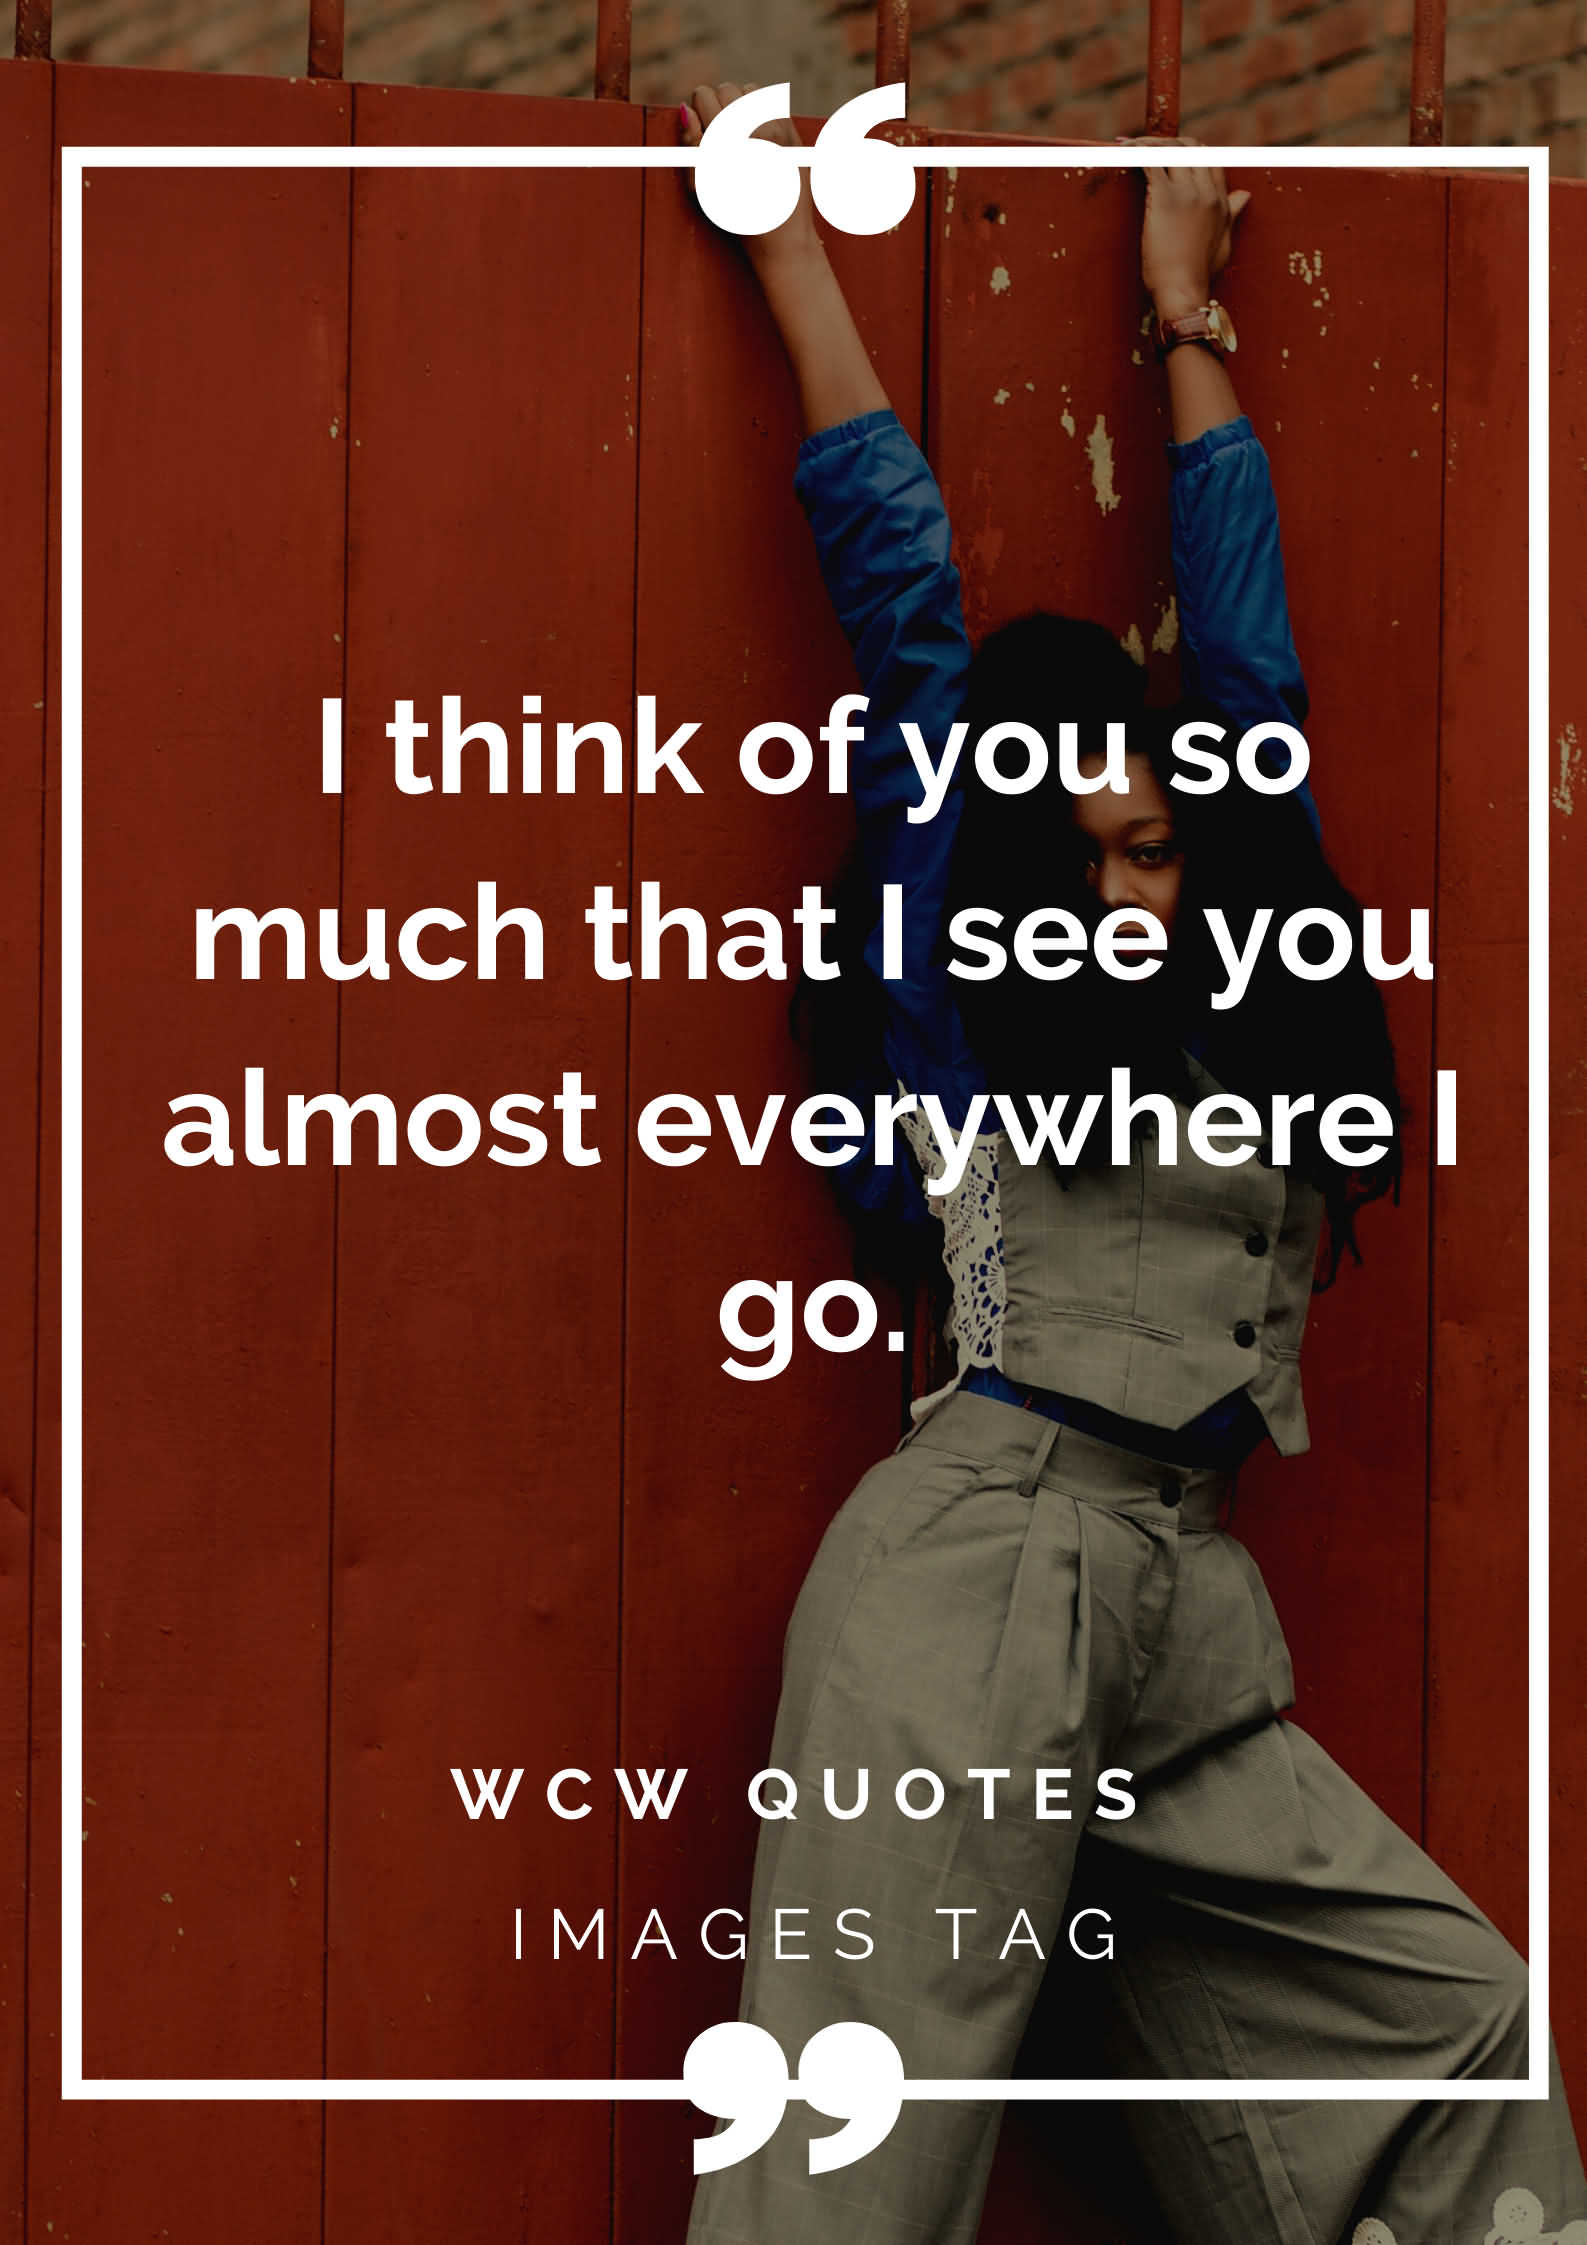 I Think Of You So Much That I See You Almost Everywhere I Go.wcw Quotes For Facebook